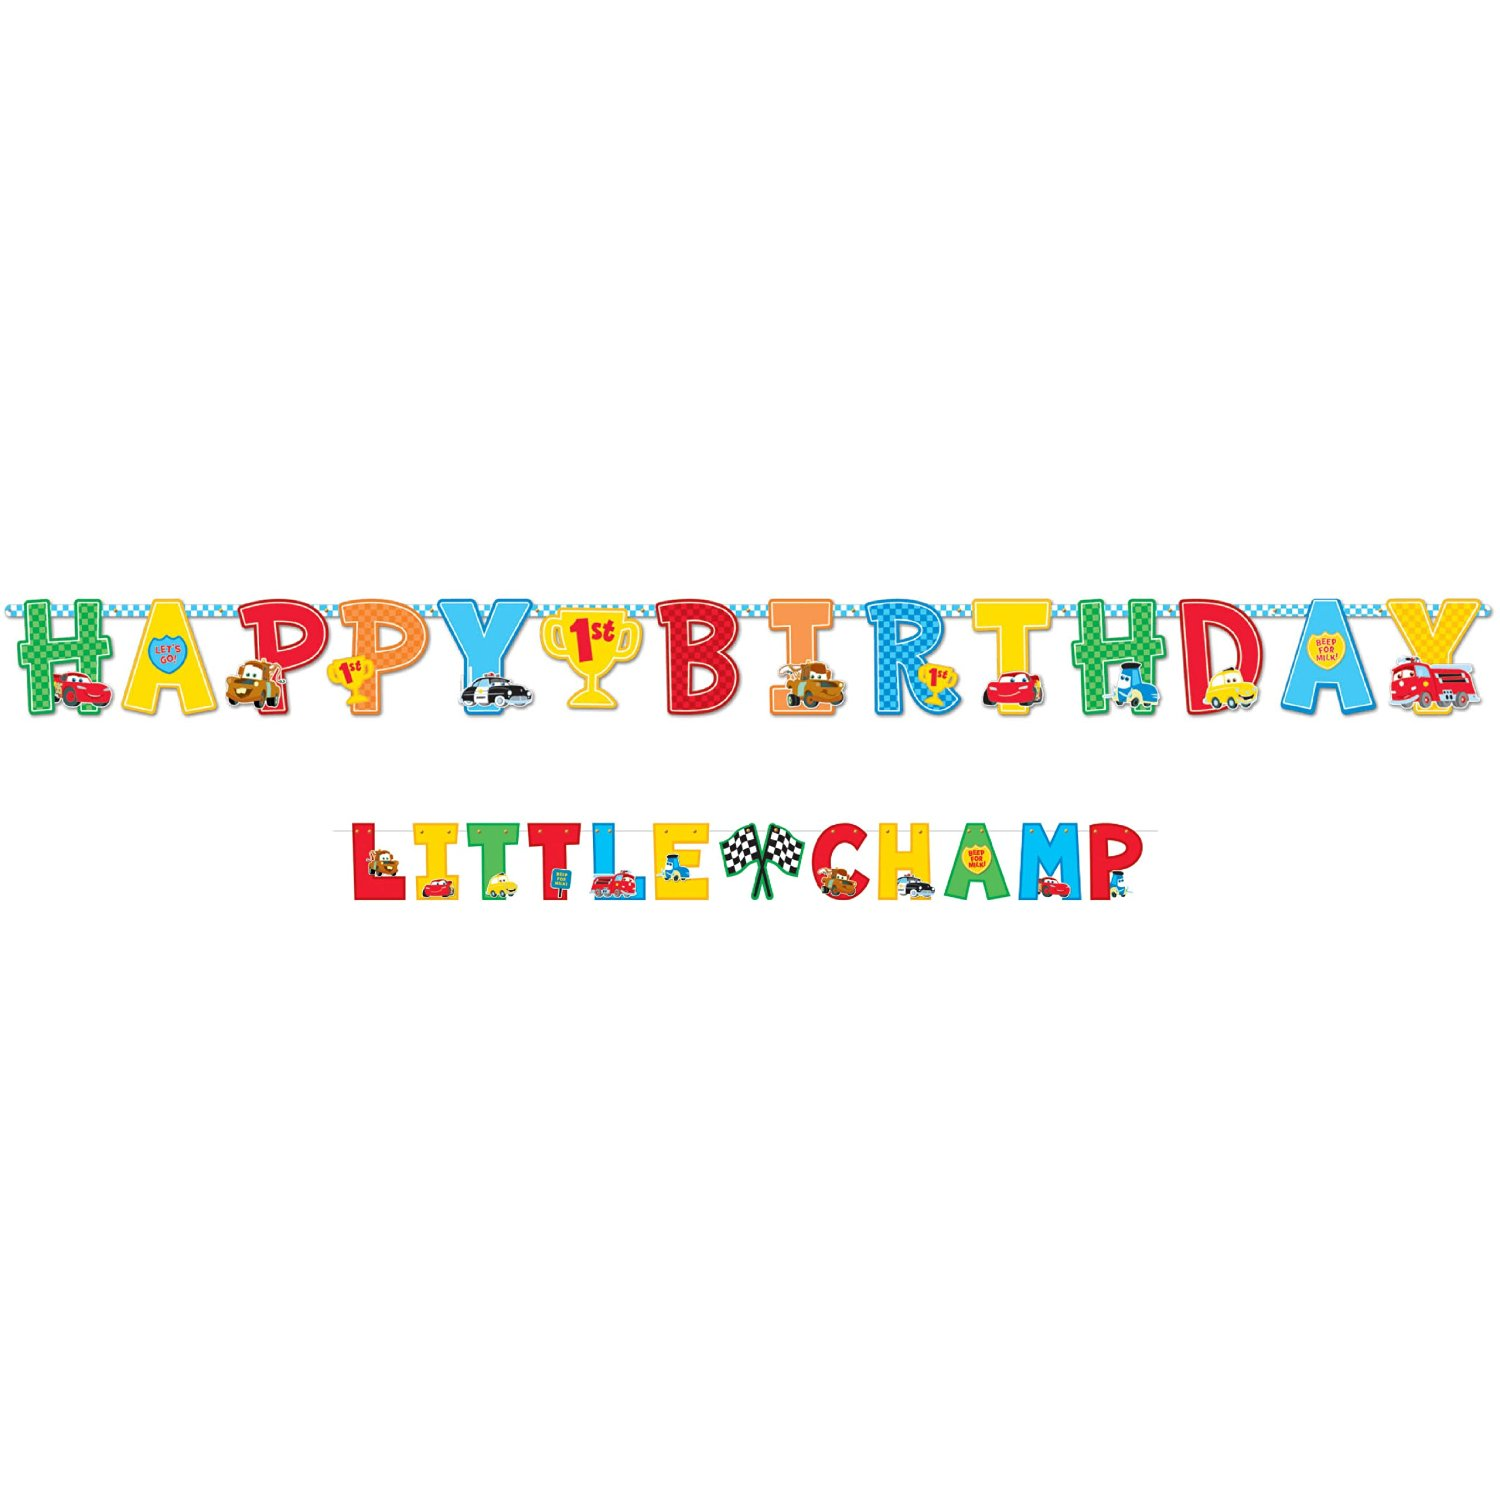 Cars 1st Birthday Jumbo Letter Banner Kit (1ct)